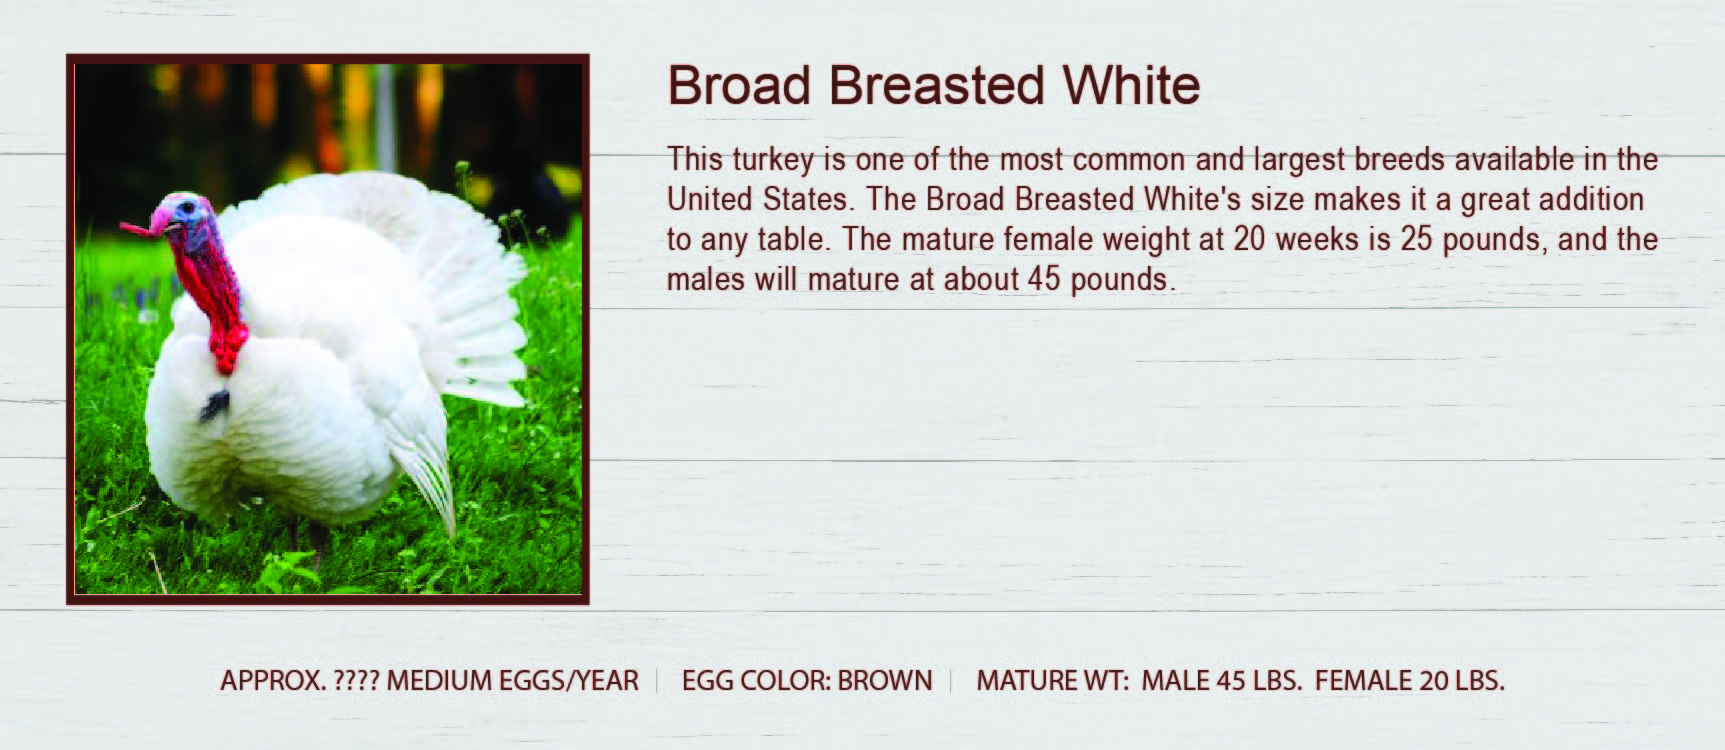 Broad Breasted White